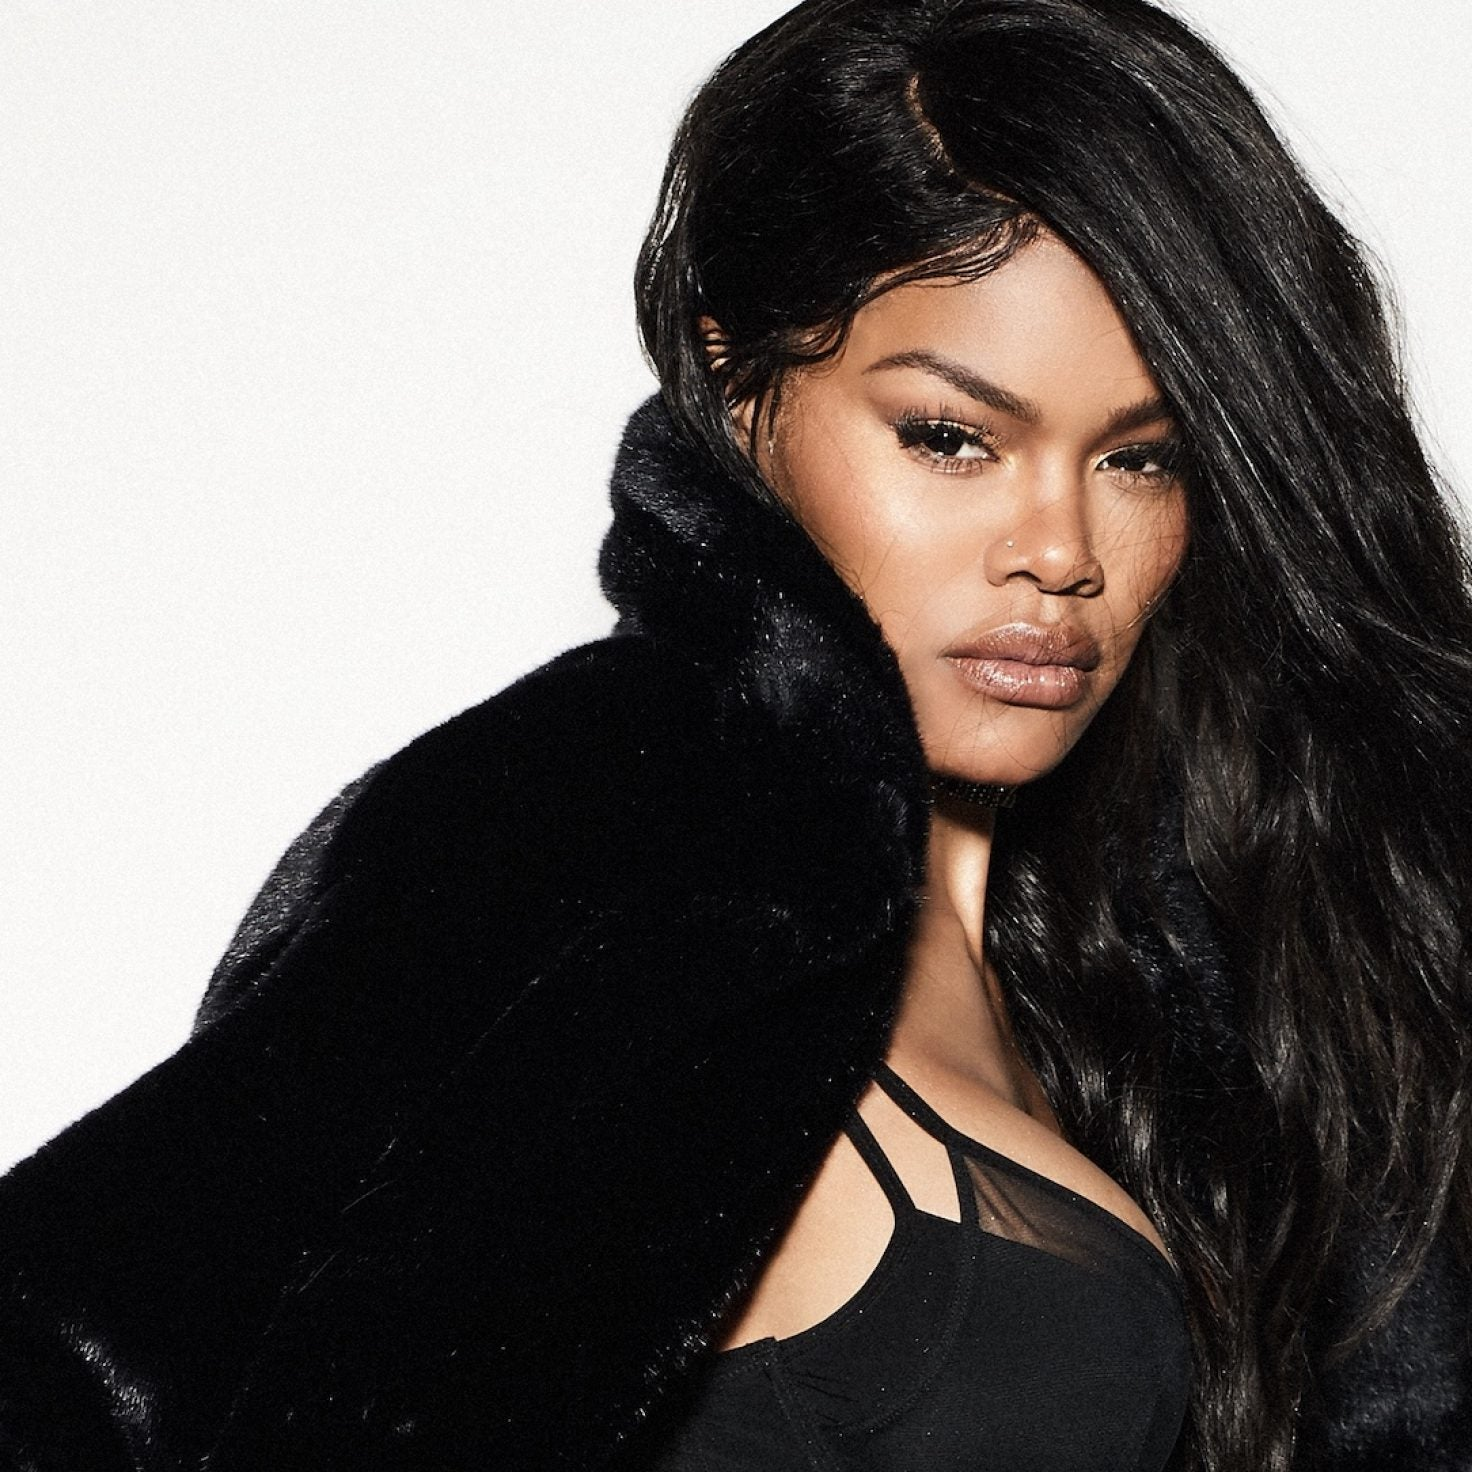 Fans Go Crazy Over Teyana Taylor's New Video 'Bare Wit Me'